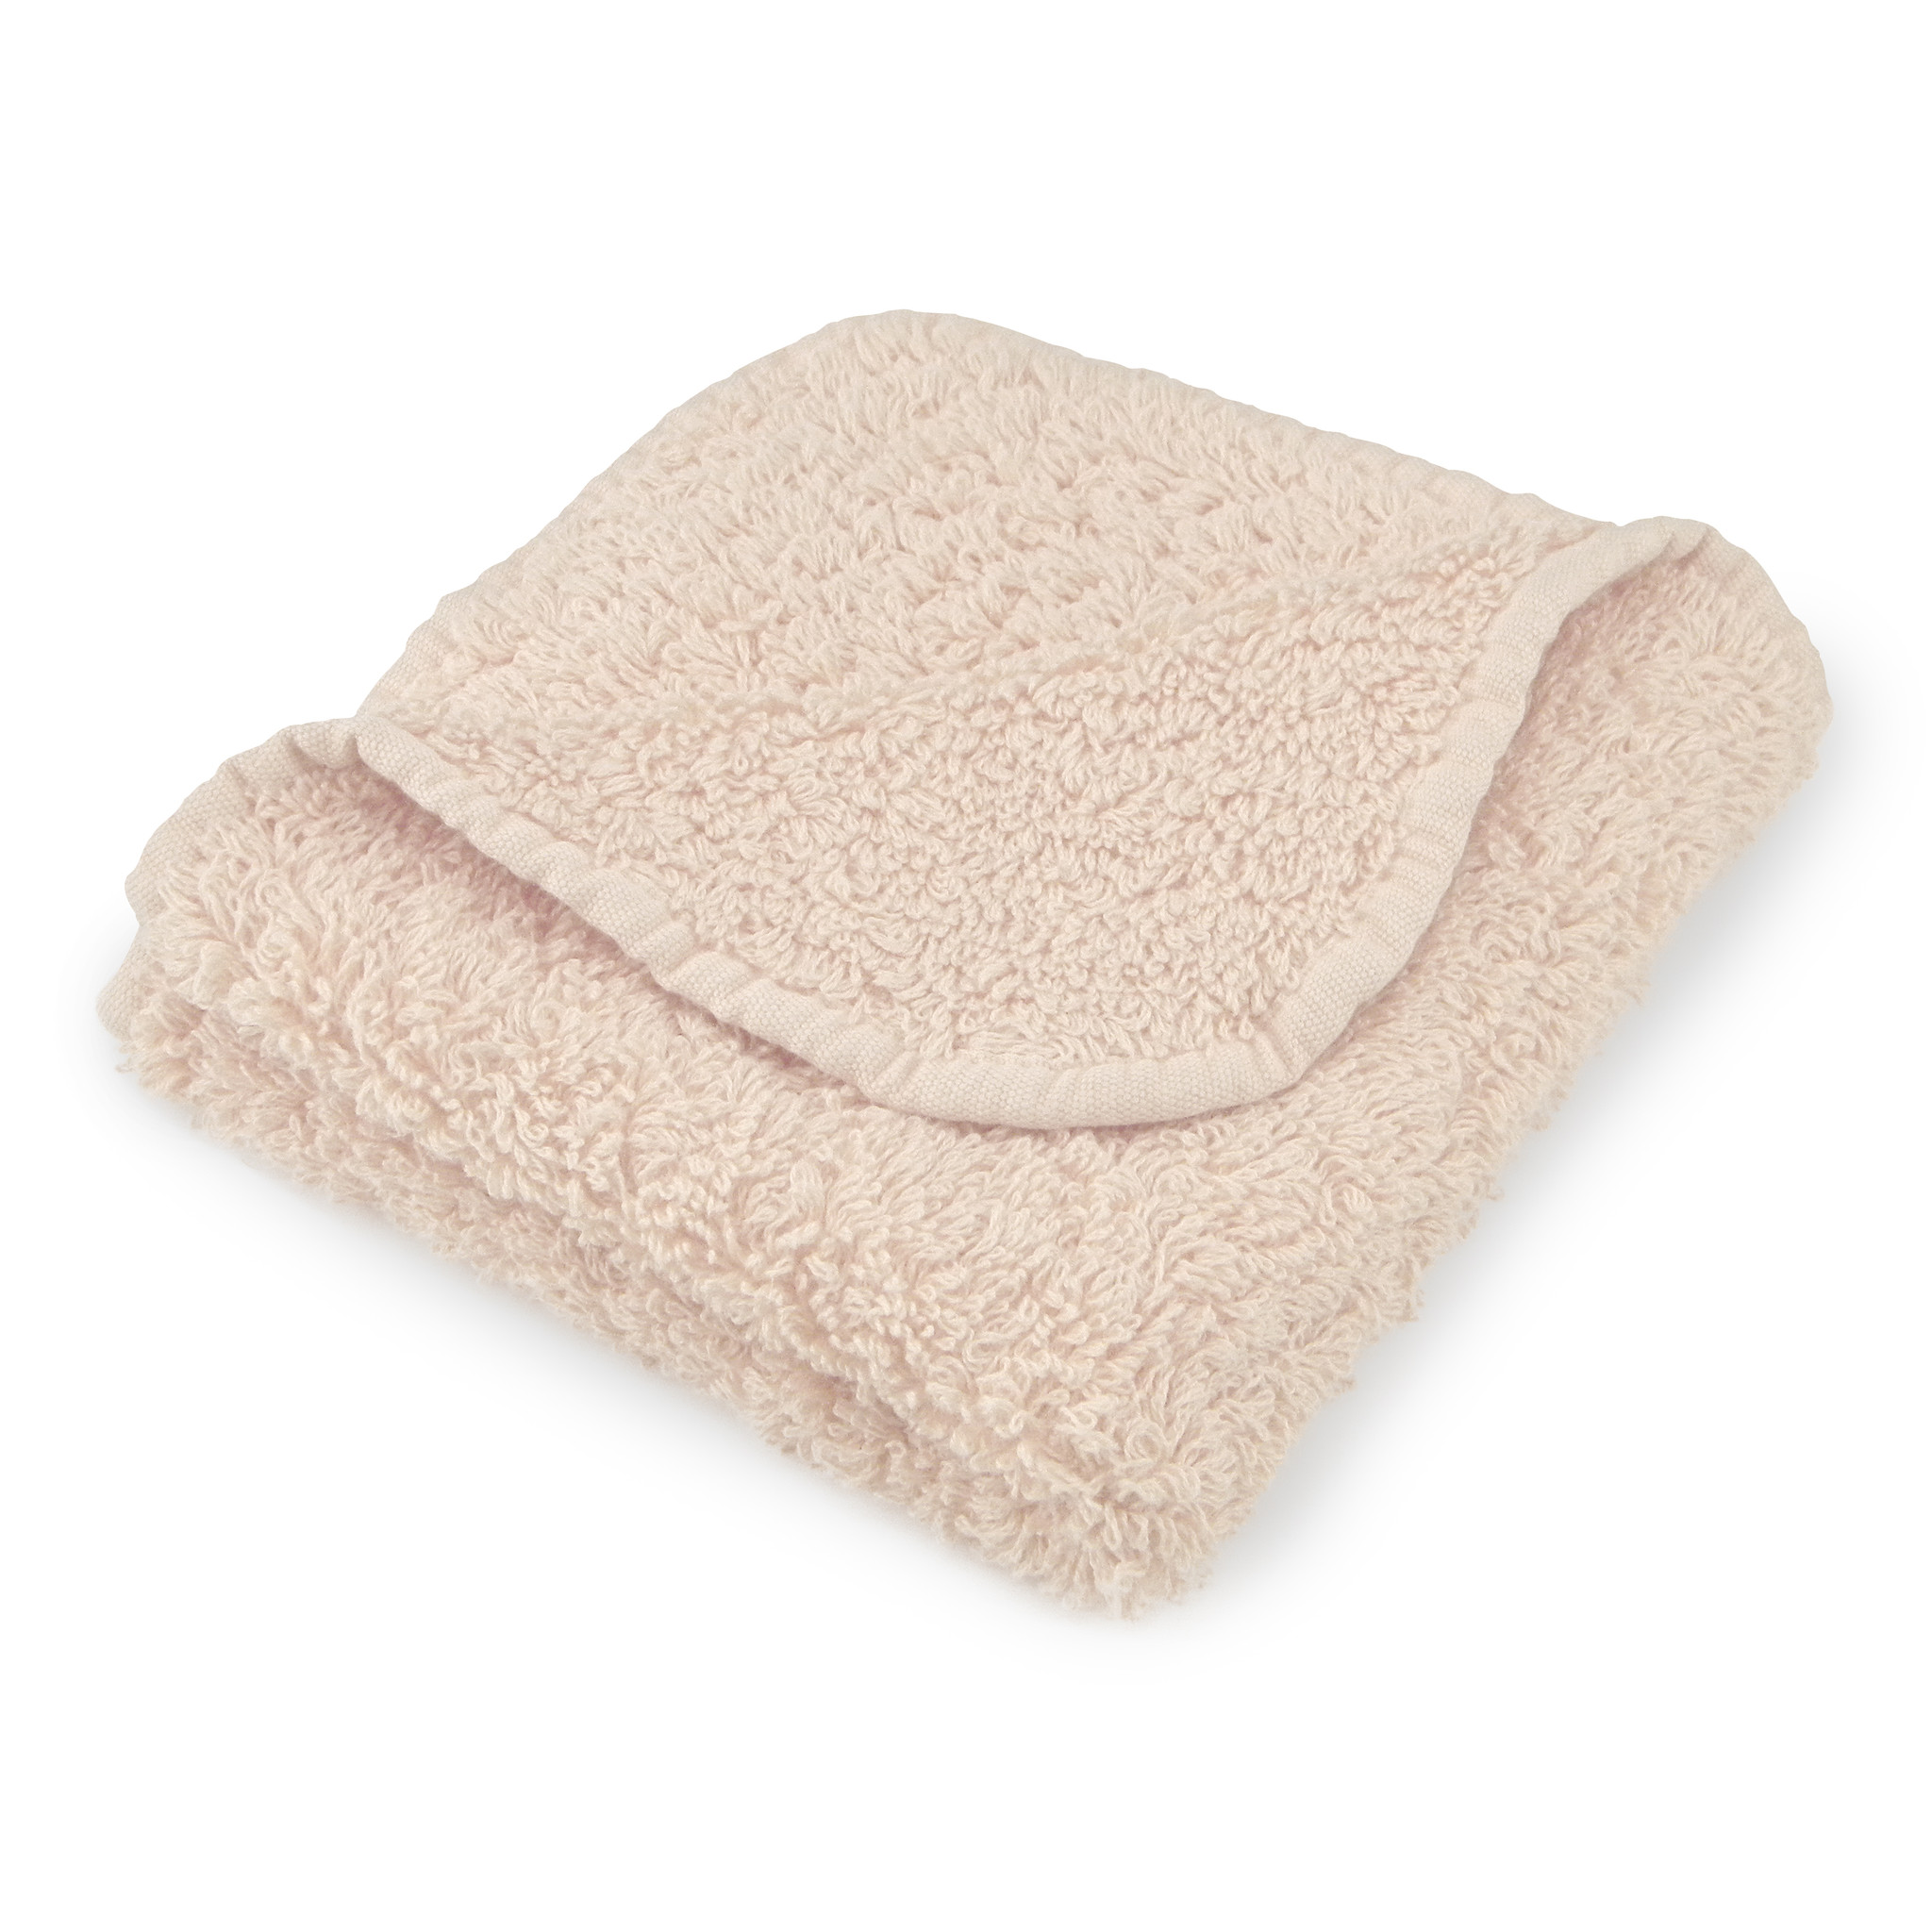 Super thick and luxurious towels from Abyss and Habidecor in Nude, via  flanddb.com